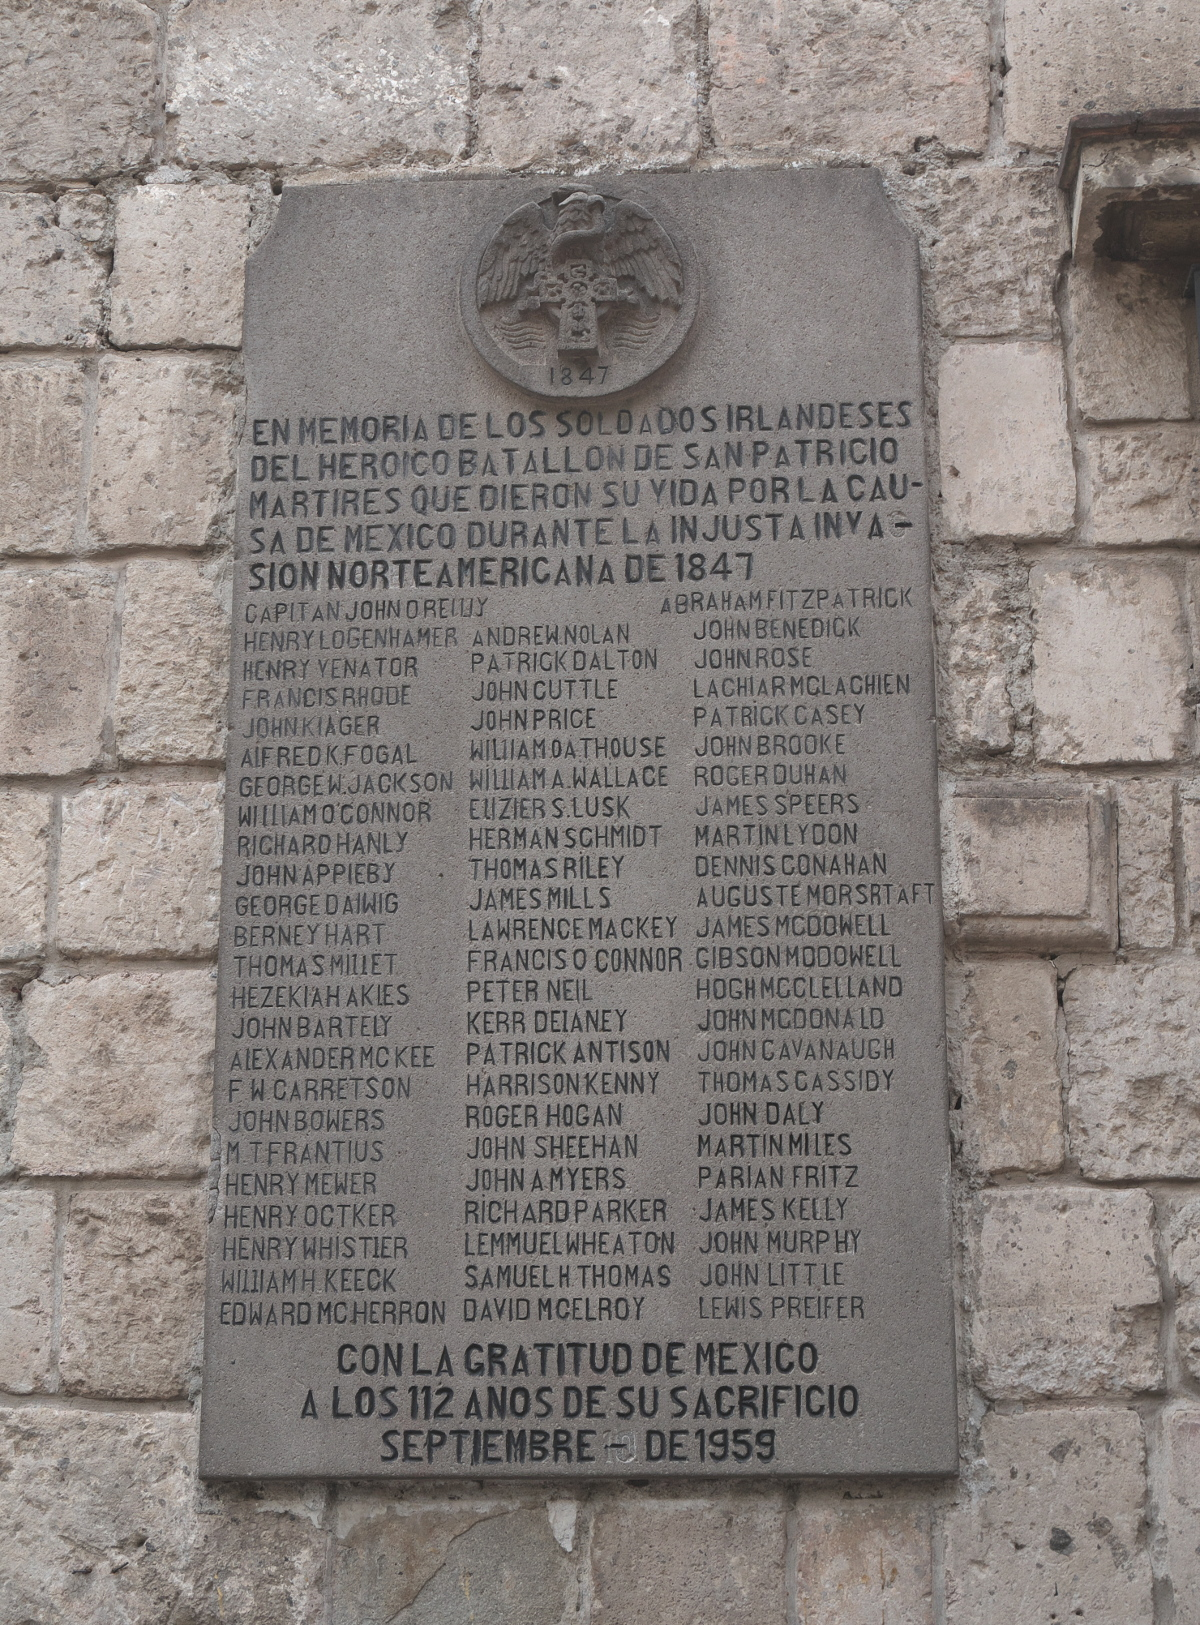 Plaque honoring the Sanpatricios in San Ángel, placed in 1959.